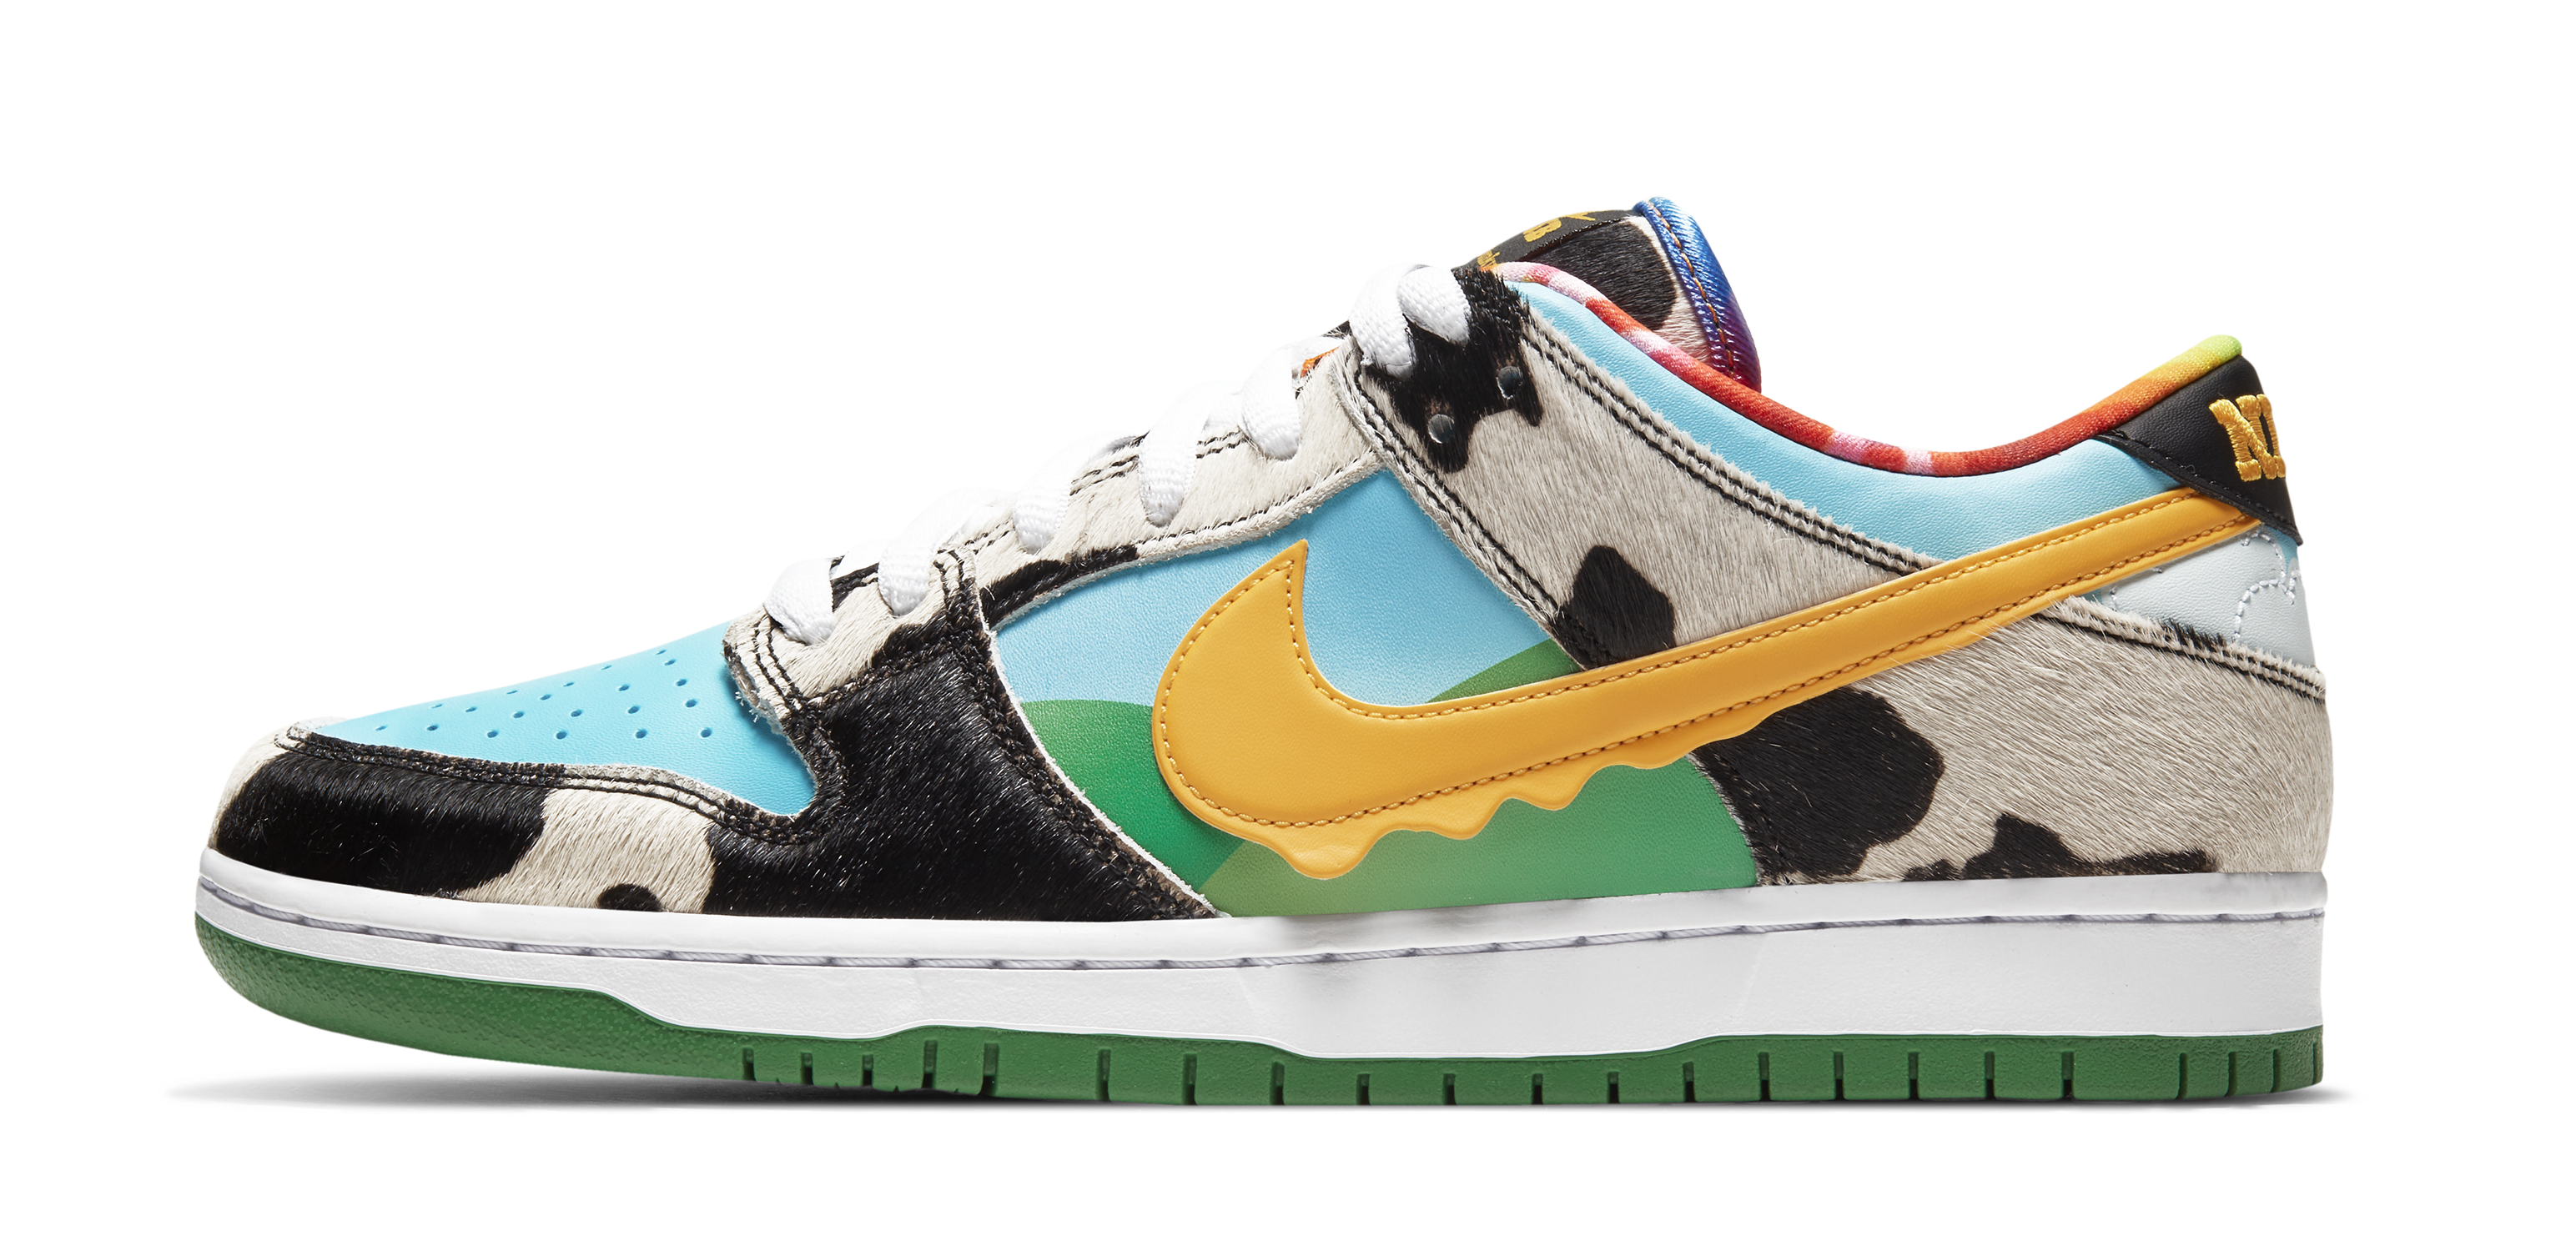 Ben and Jerry's x Nike SB Dunk Low 'Chunky Dunky' CU3244-100 (Lateral)